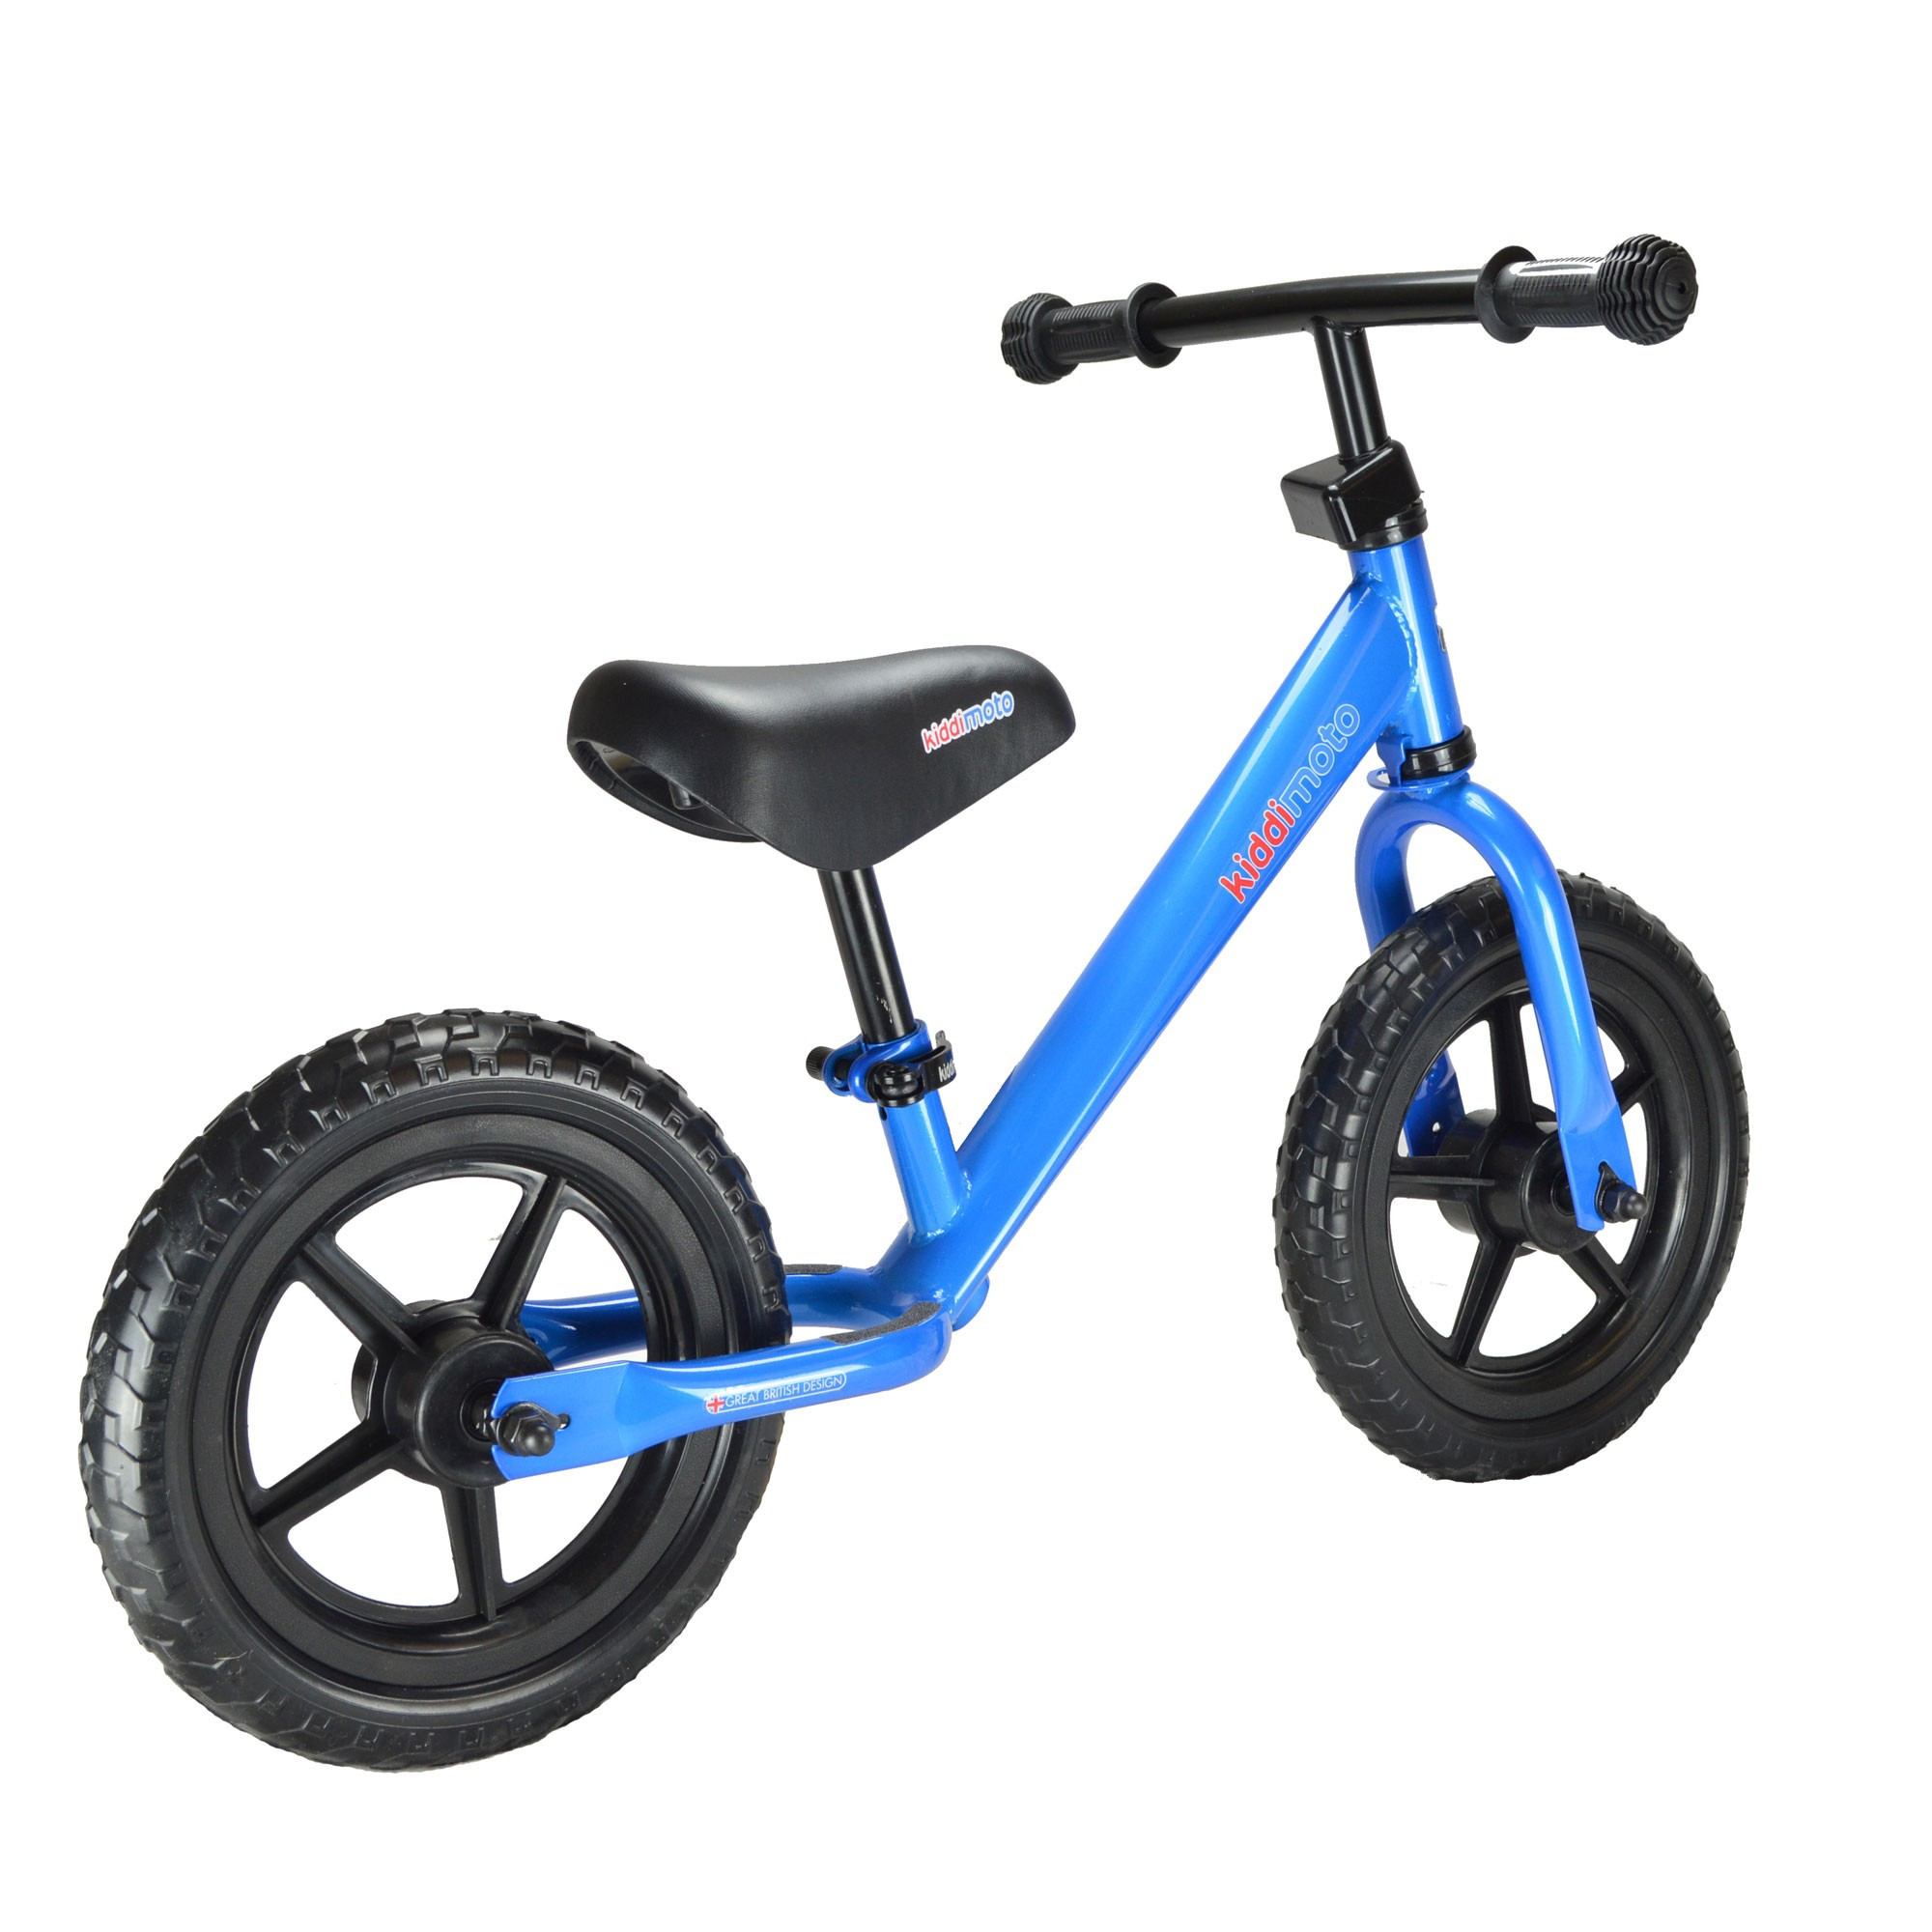 "kiddimoto Laufrad Super Junior SJ4 Metall verstellbar 12"" blau Bild 3"